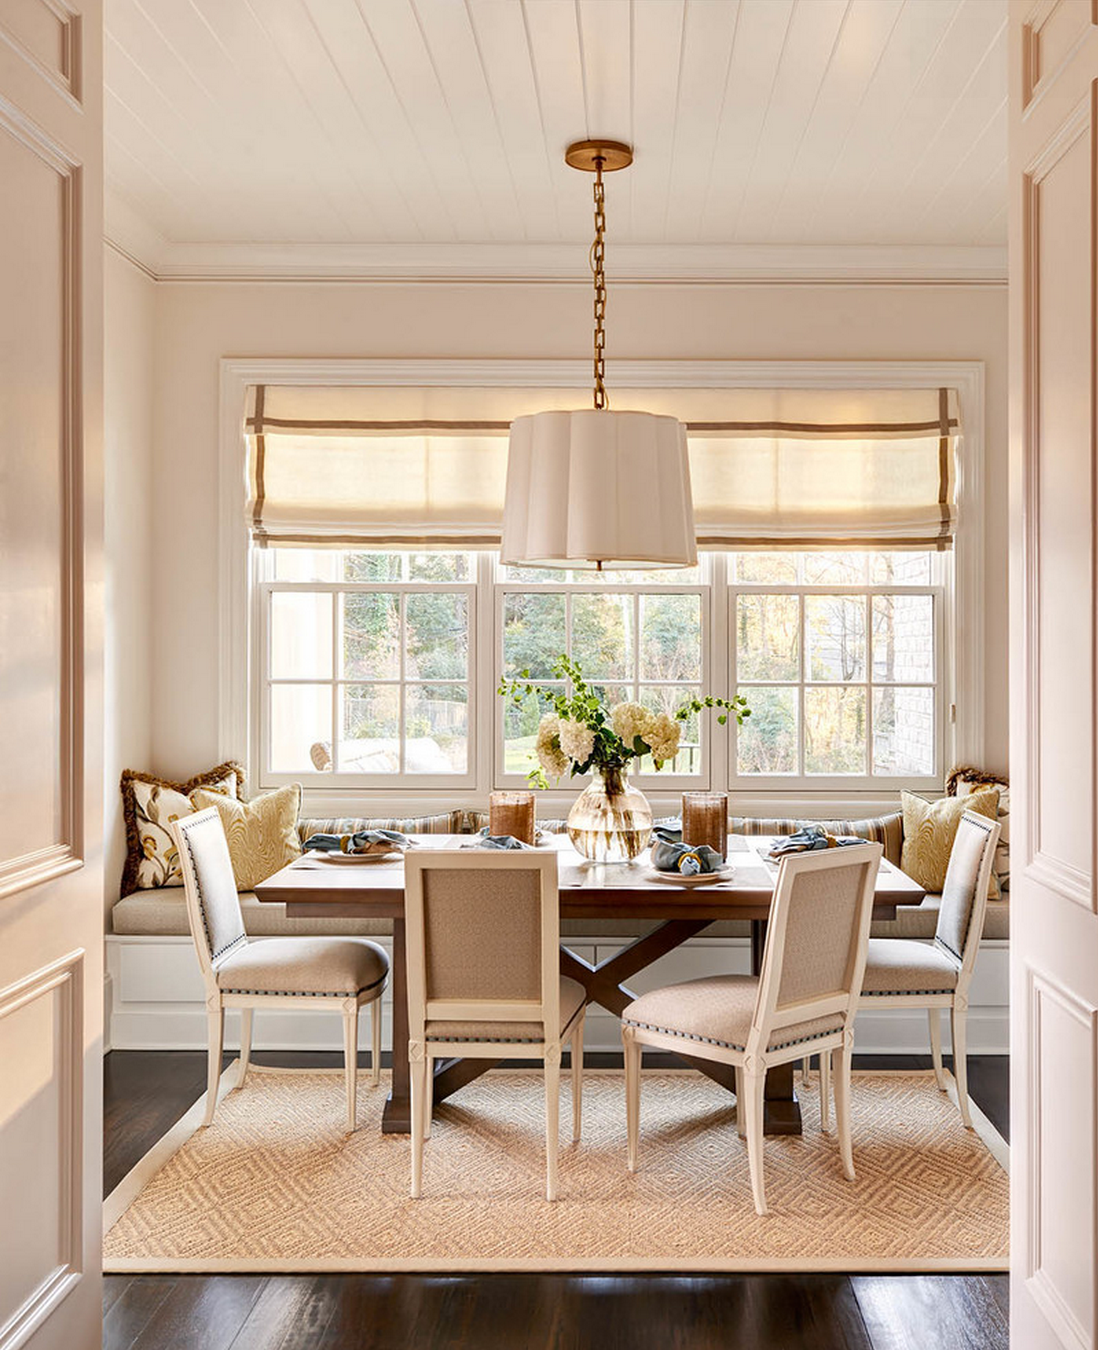 kitchen breakfast area inspiration tongue and groove ceiling roman shade banquette - Breakfast Area Lighting